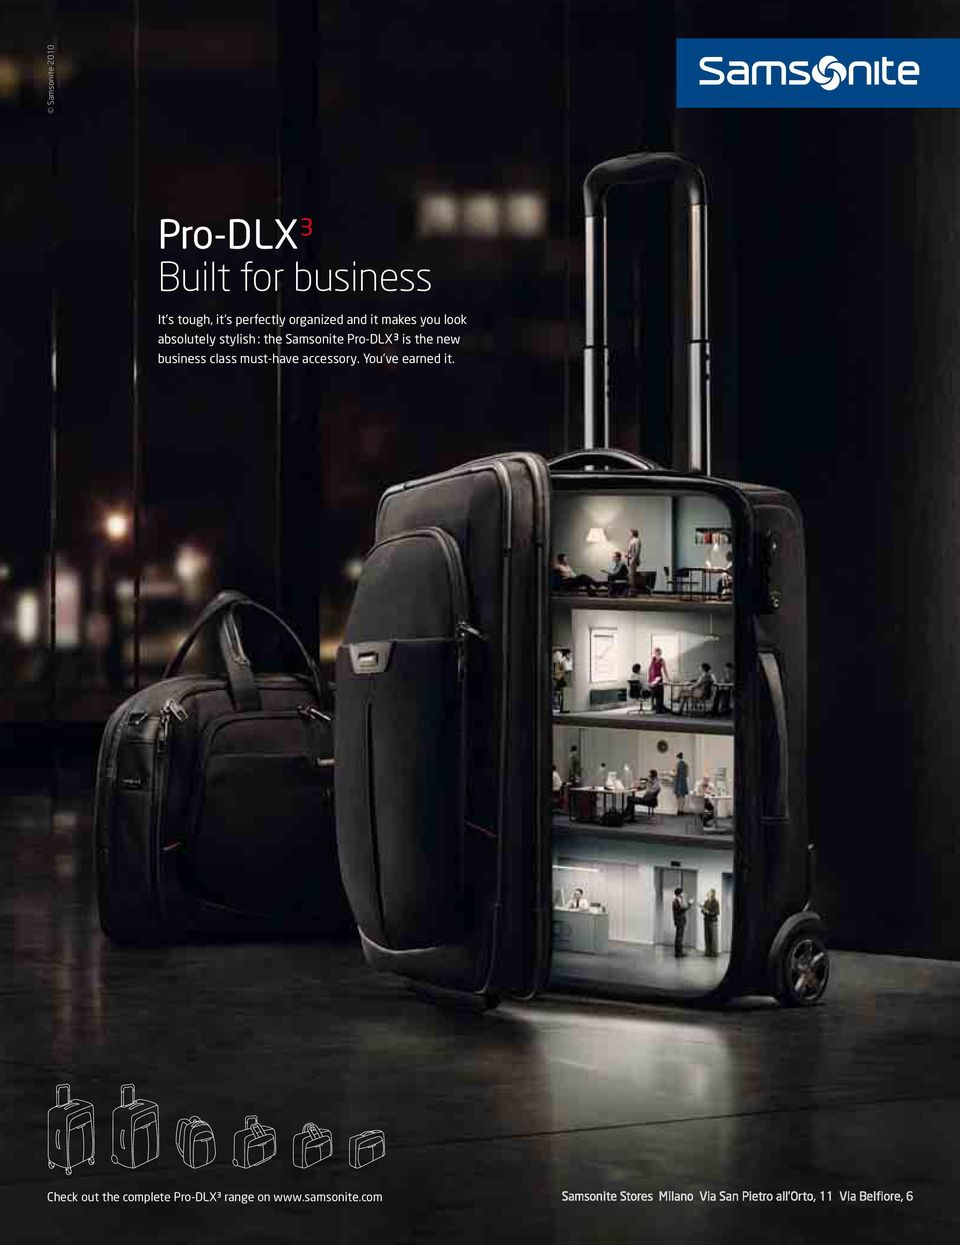 Samsonite Pro-DLX 3 is the new business class must-have accessory.